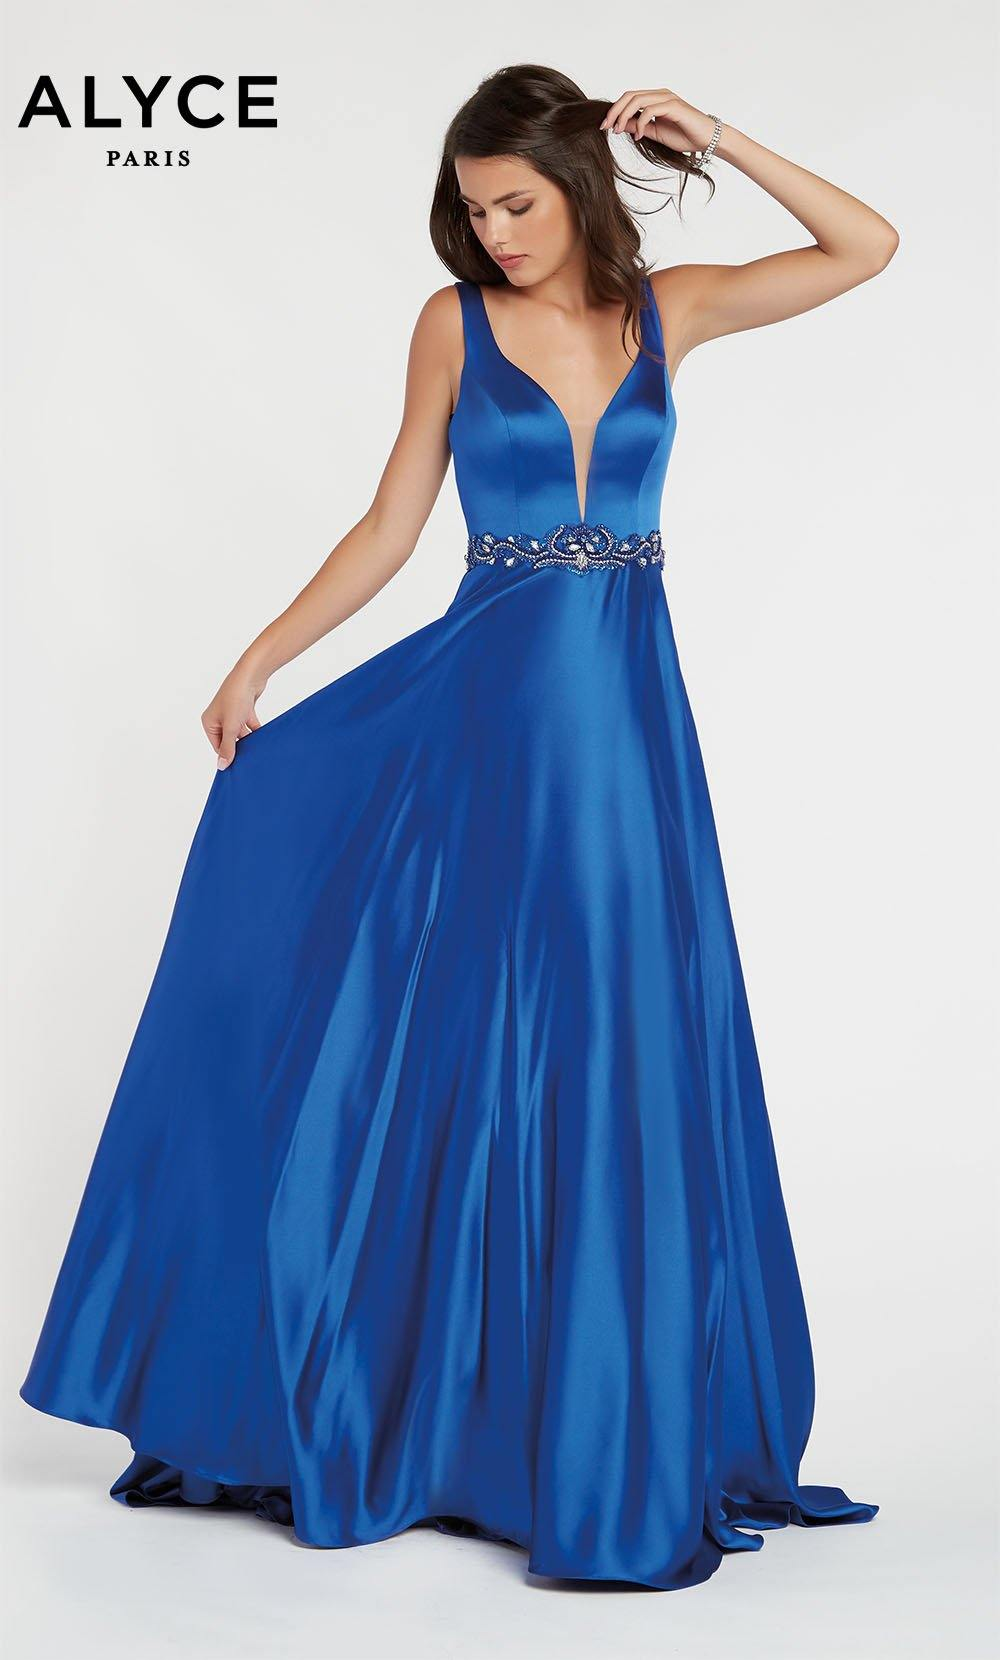 Royal Blue luminous satin A line prom dress with a plunging neckline and beaded natural waistline